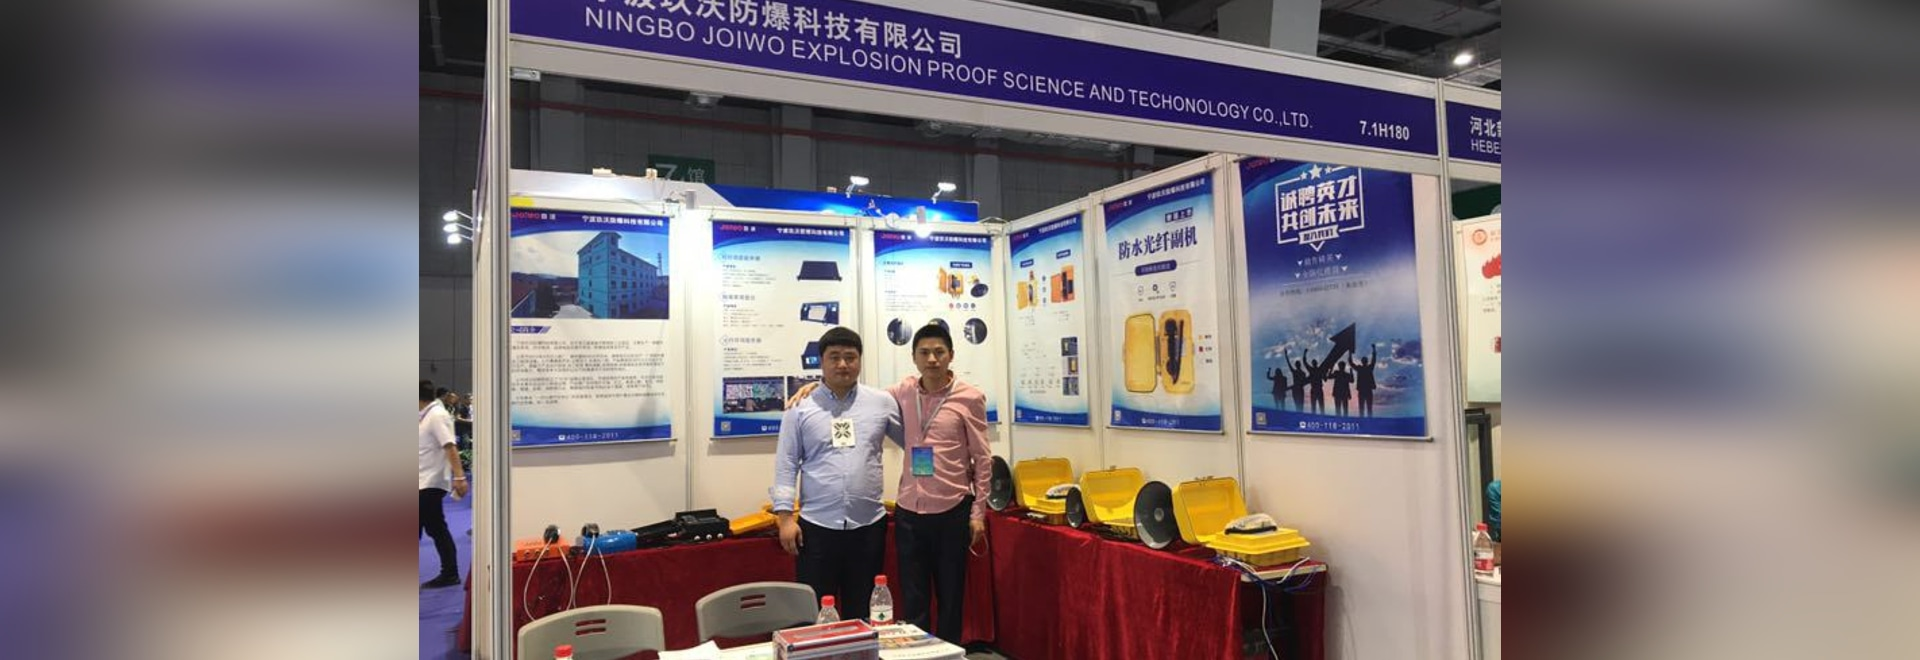 Joiwo is attending the 3rd UPG China 2019 in Shanghai